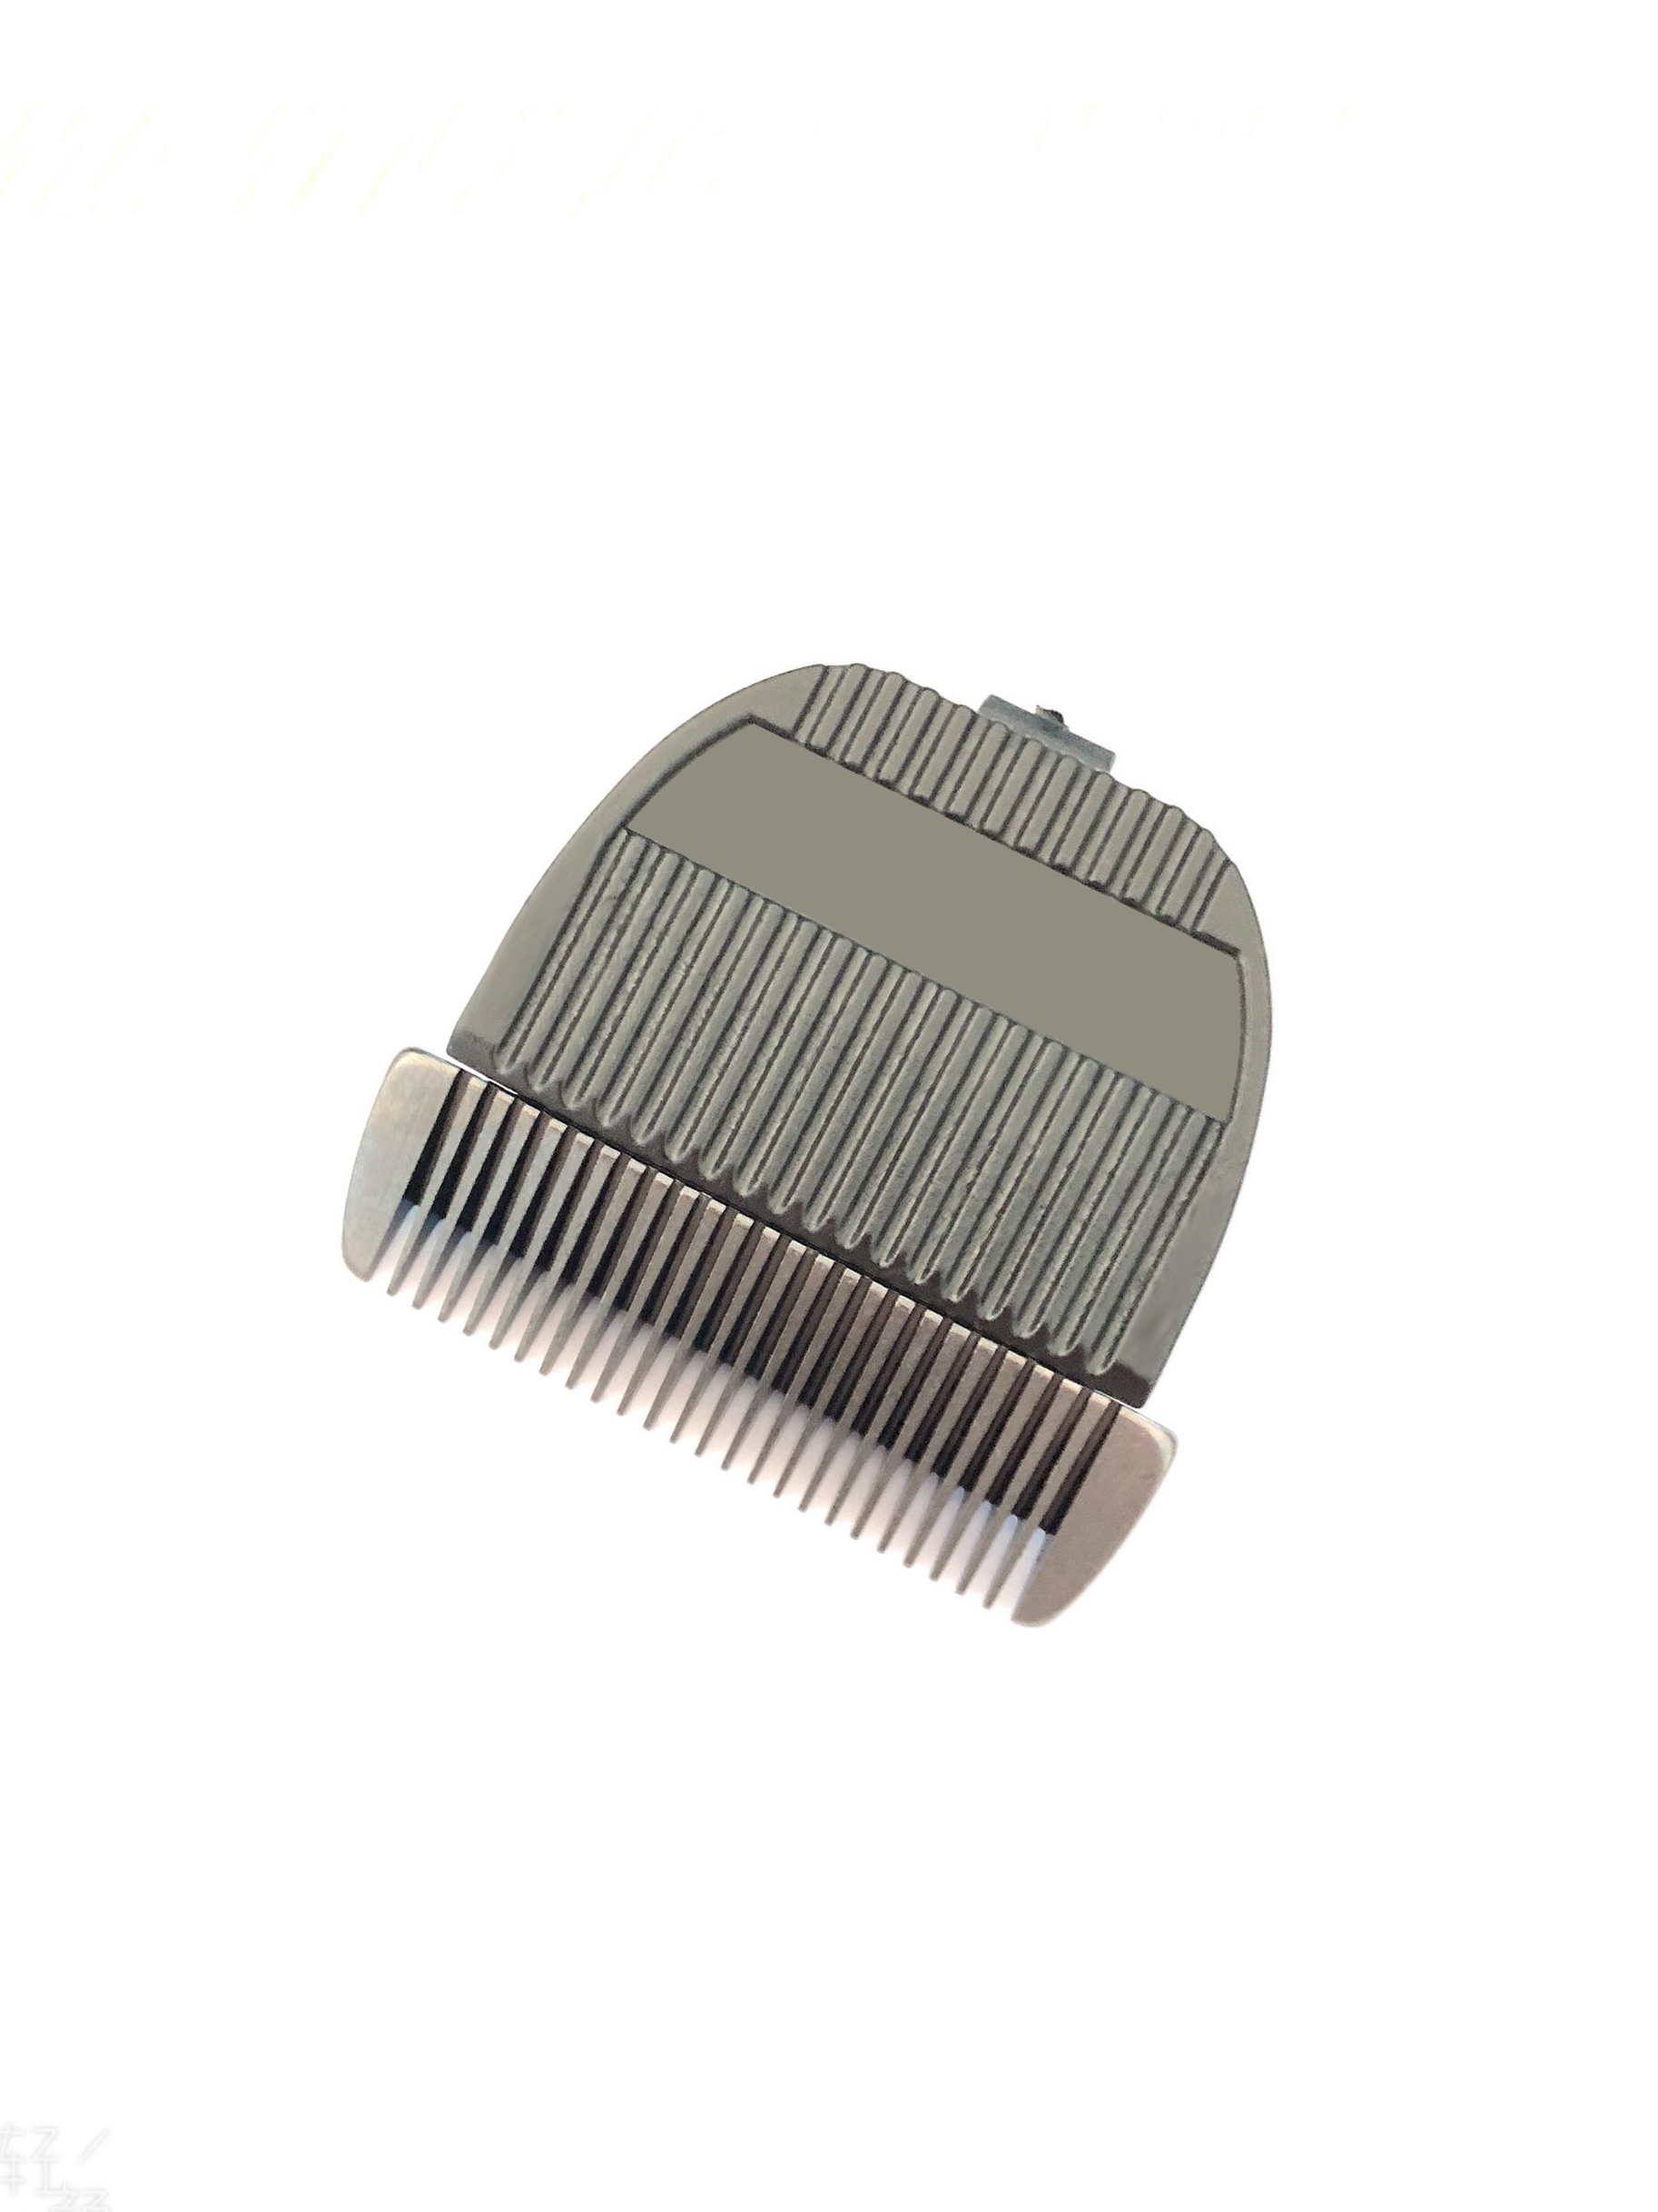 Hair Trimmer Cutter Barber Head For Panasonic  ER150 ER151 ER152 ER153 ER154 ER160 ER1510 ER1511 ER1610 ER1611 ER-GP80 ER9900